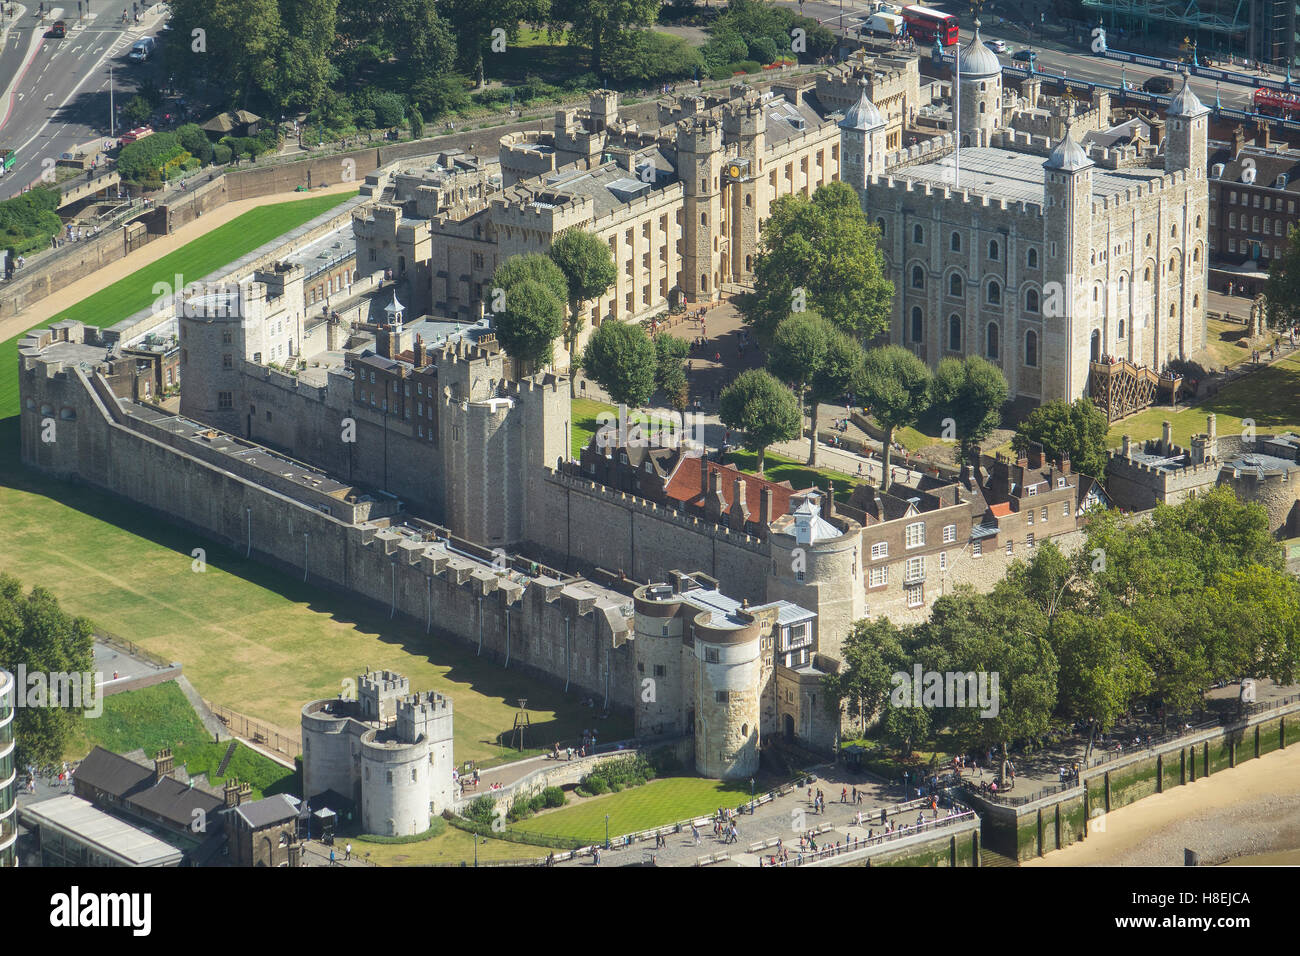 Aerial view of the Tower of London, UNESCO World Heritage Site, London, England, United Kingdom, Europe - Stock Image